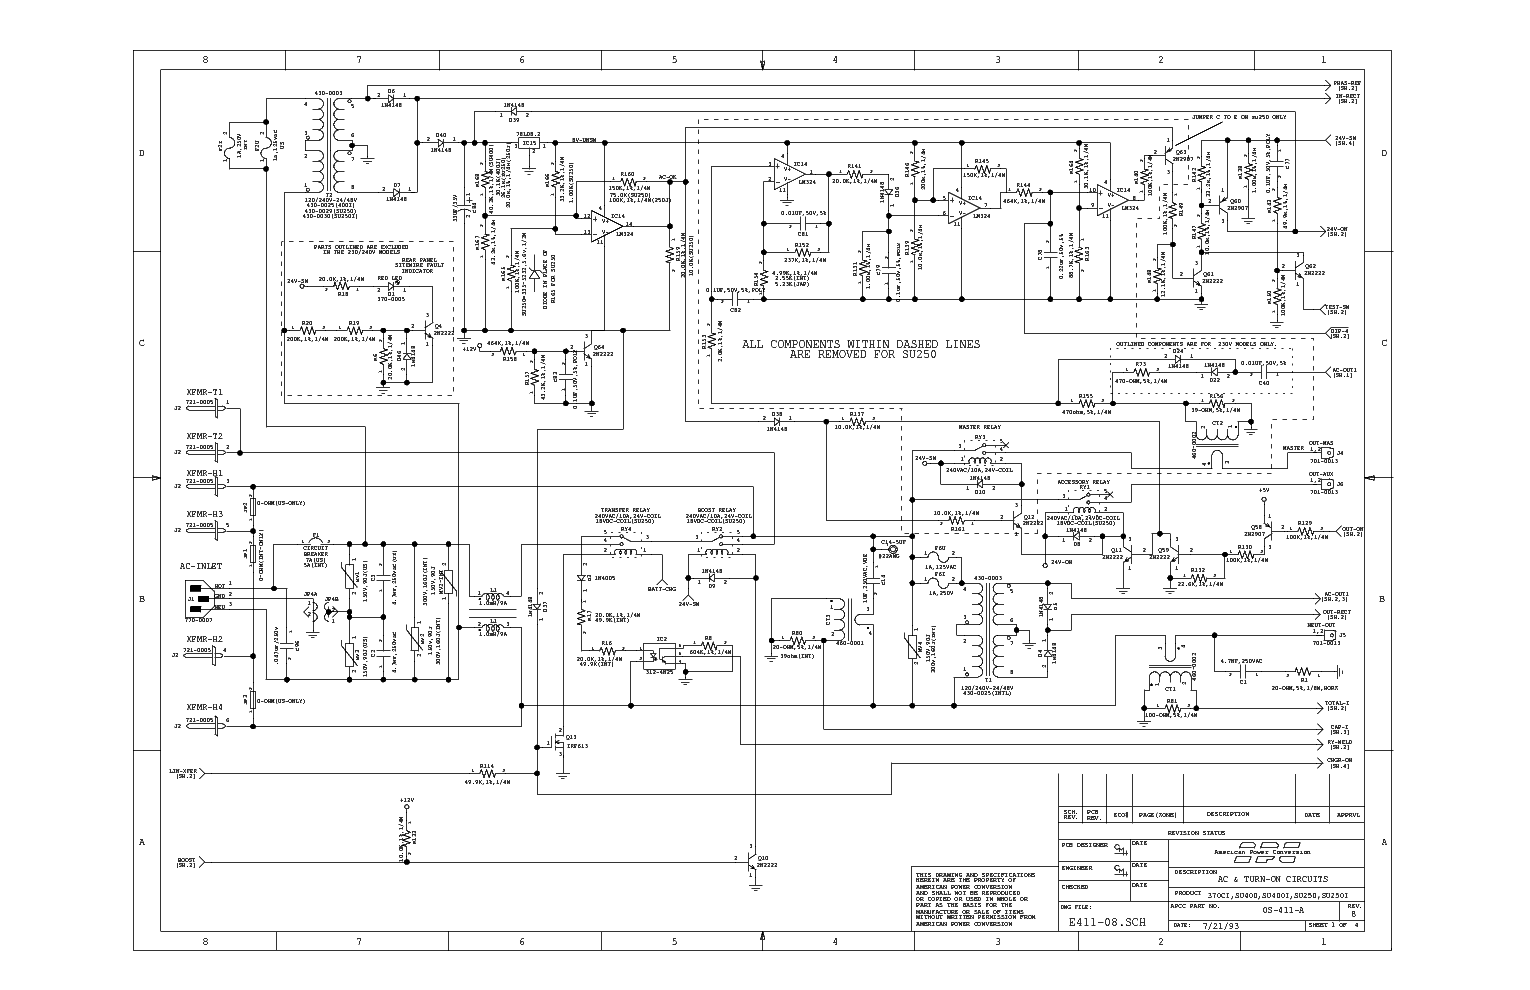 Apc Ups Diagram - 20.3.malawi24.de • Ups Wiring Diagrams Block on block heater diagram, block engine, fiber diagram, local area network diagram, block pump diagram, block foundation diagram, coal diagram, ethernet punch down block diagram, block gauges diagram, atlas diagram, schematic block diagram, block flow diagram, 66 punch down block diagram, home diagram, block software diagram, 110 block diagram, phone punch down block diagram,